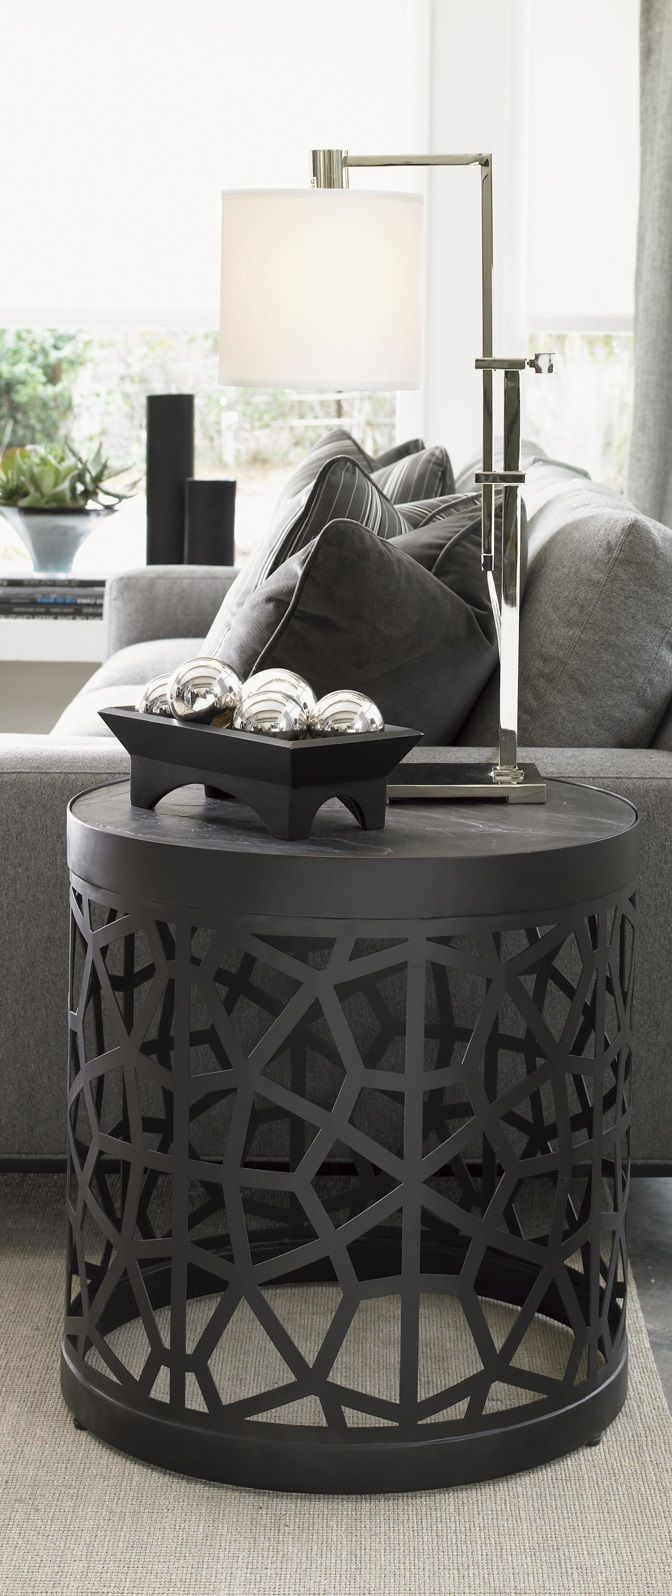 Best 25+ Living room side tables ideas on Pinterest | Living room ...